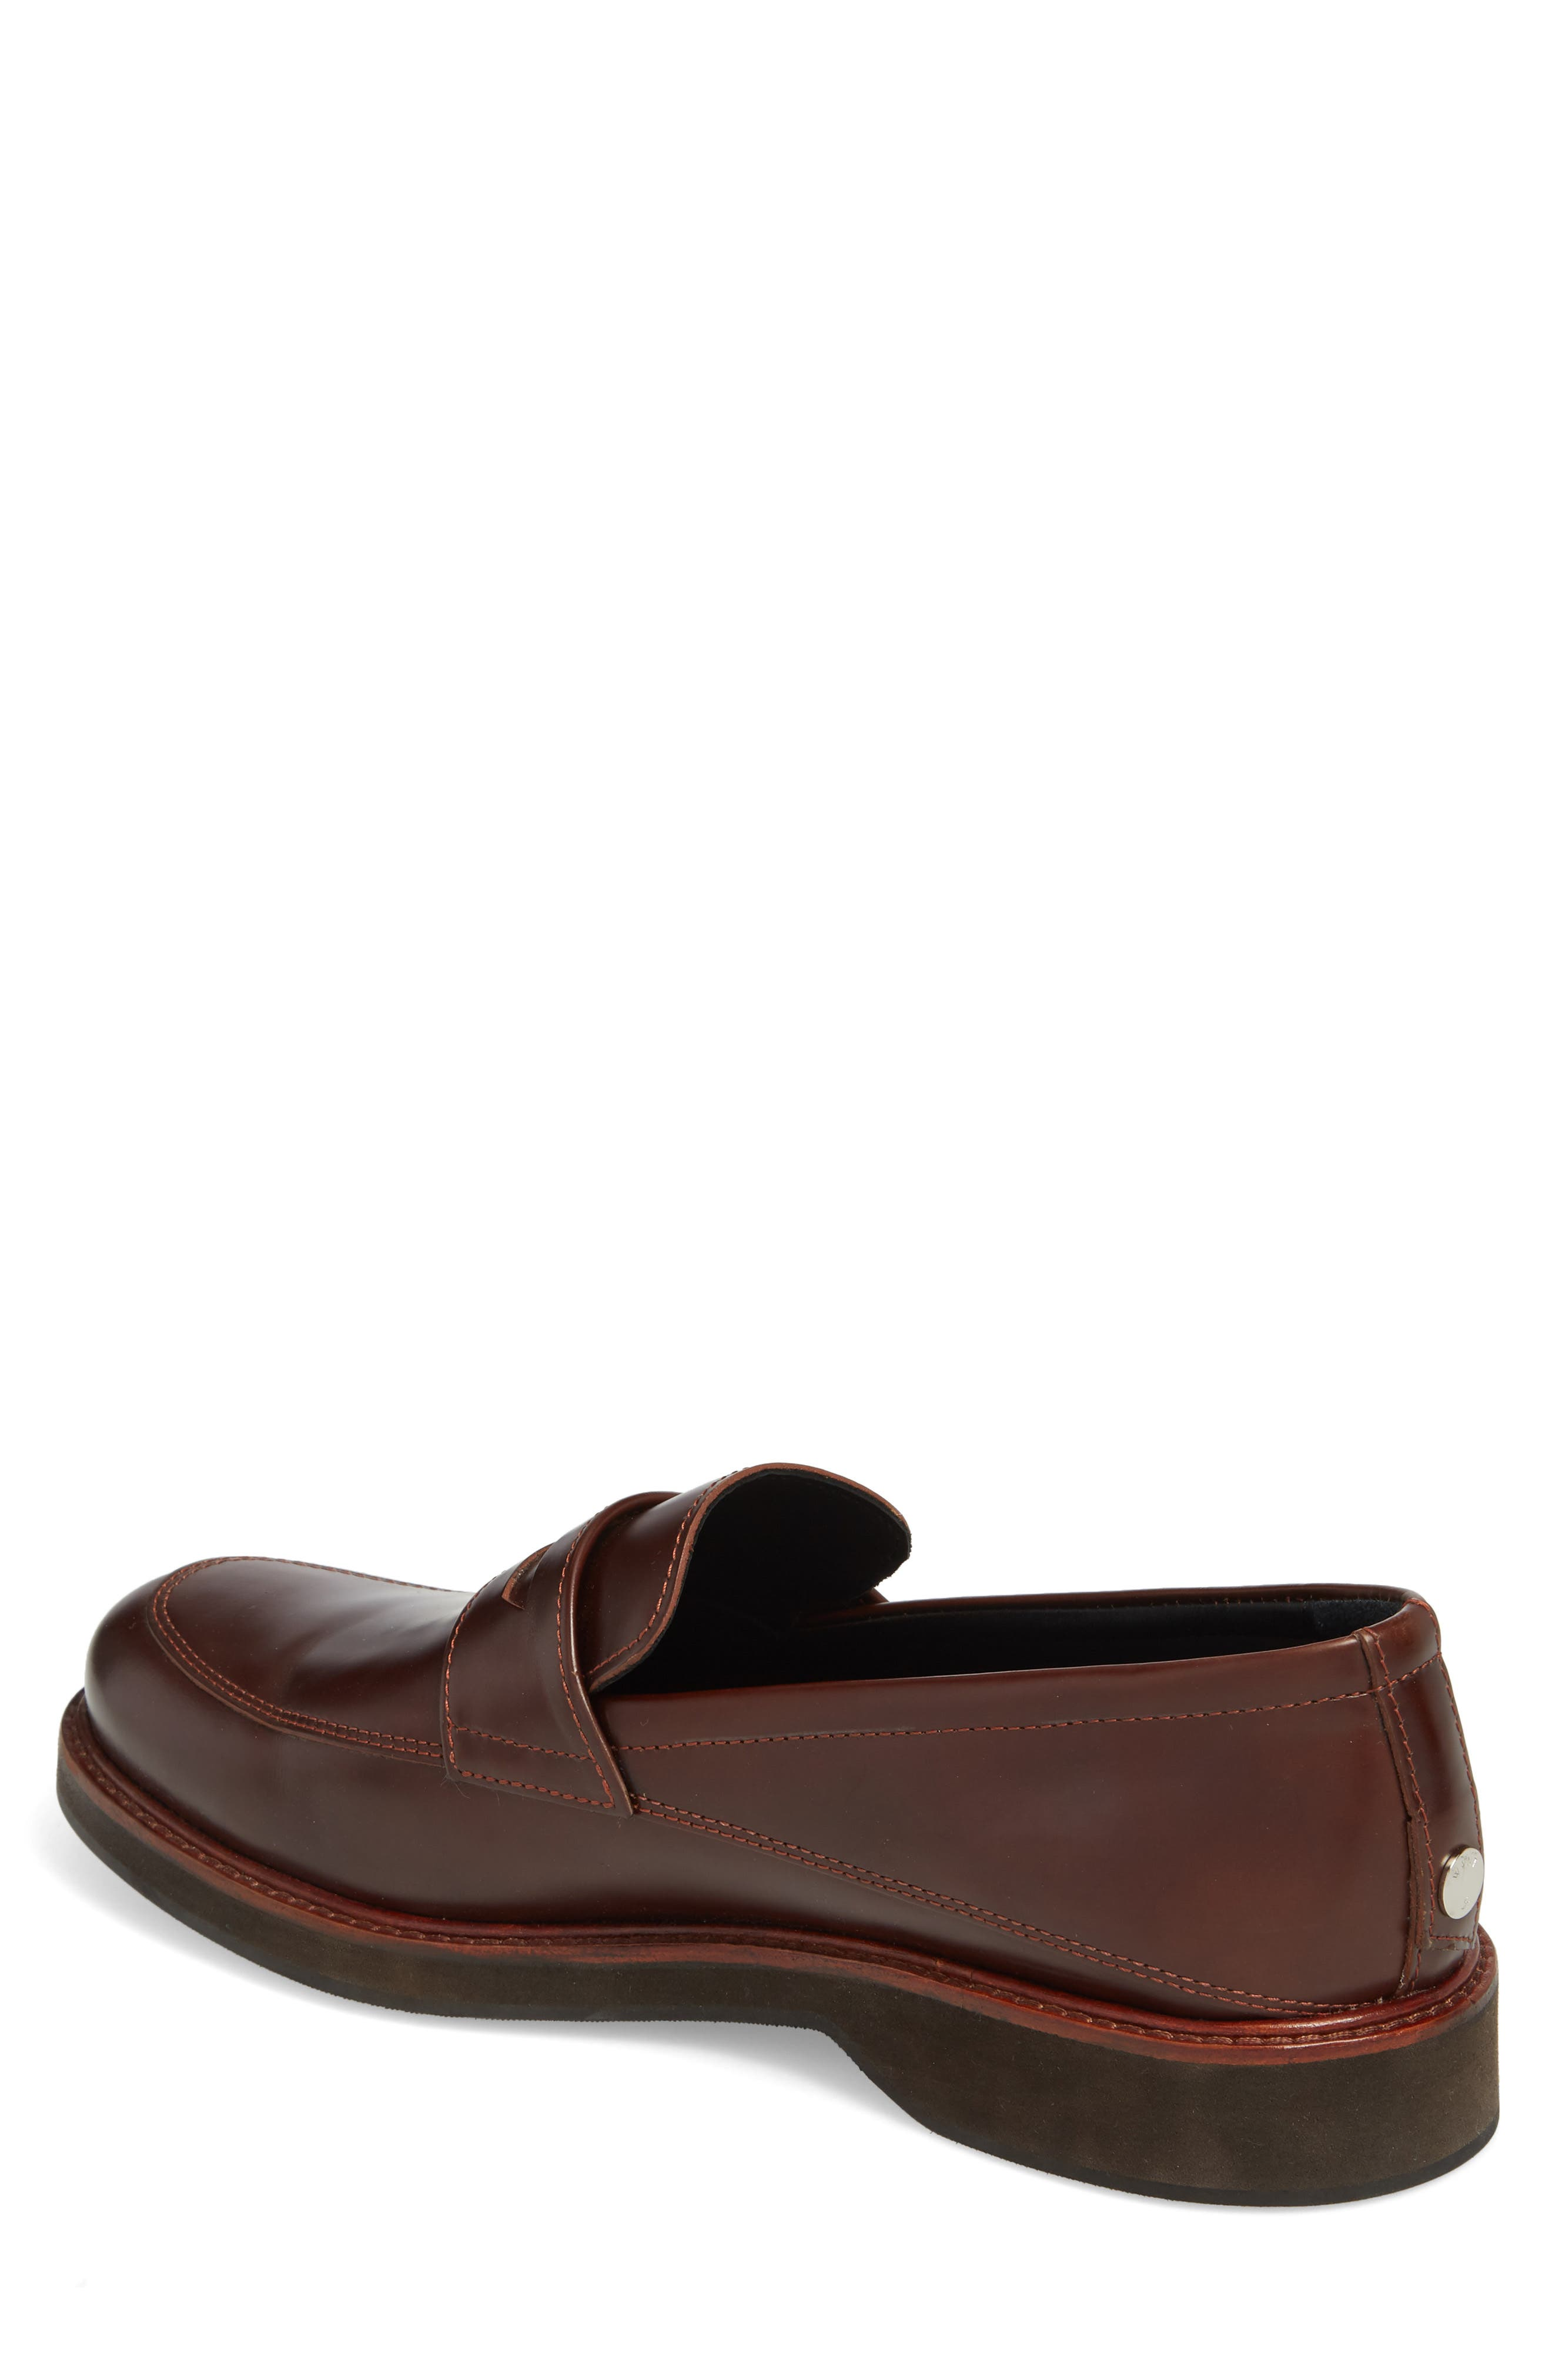 'Marcos' Loafer,                             Alternate thumbnail 2, color,                             219